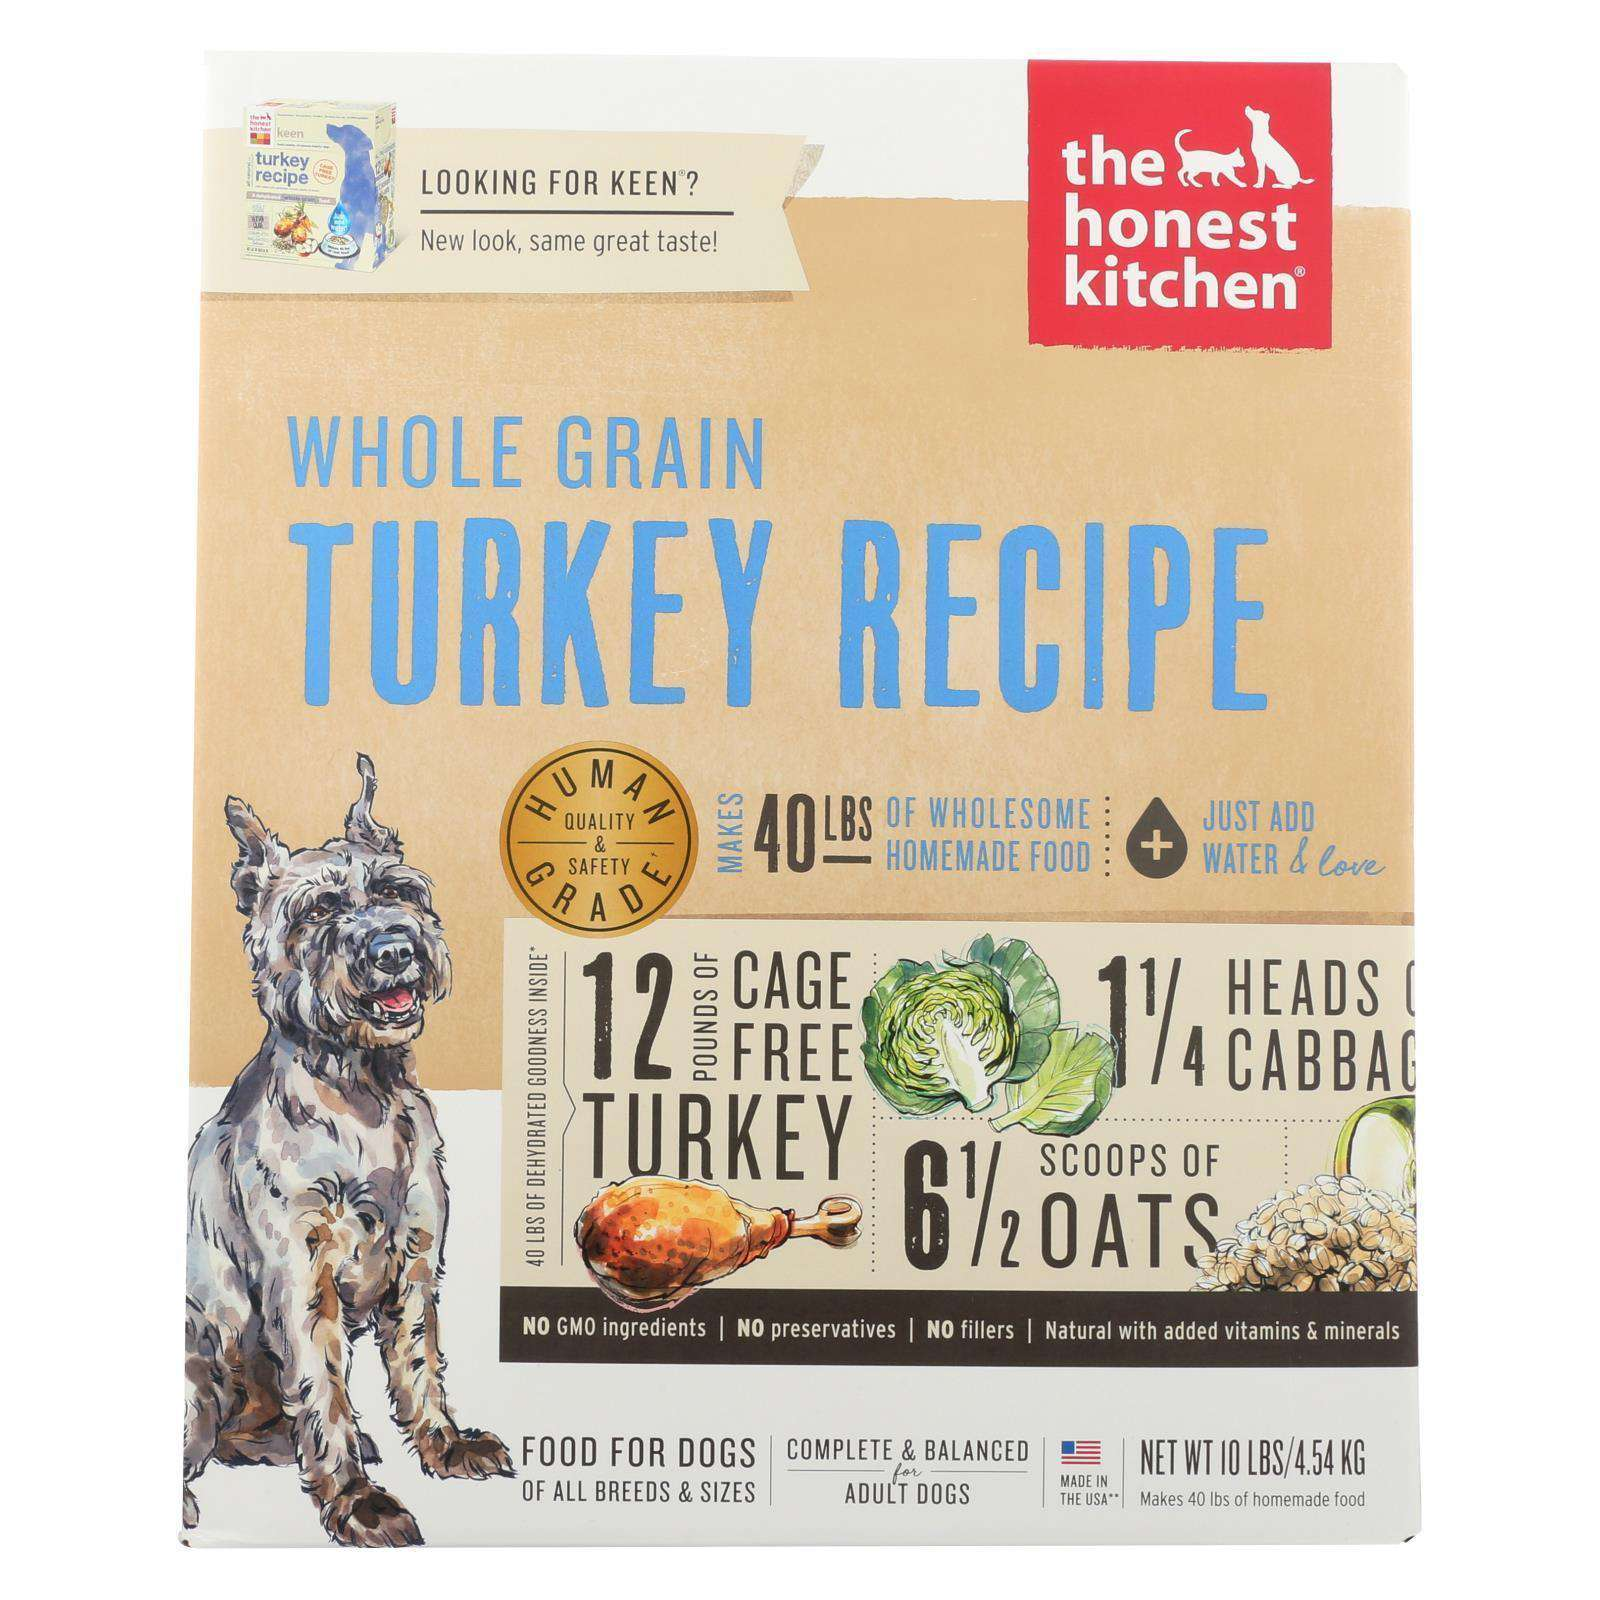 The Honest Kitchen Keen Dehydrated Dog Food Turkey Recipe - 10 Lb.-The Honest Kitchen-DirtyFurClothing